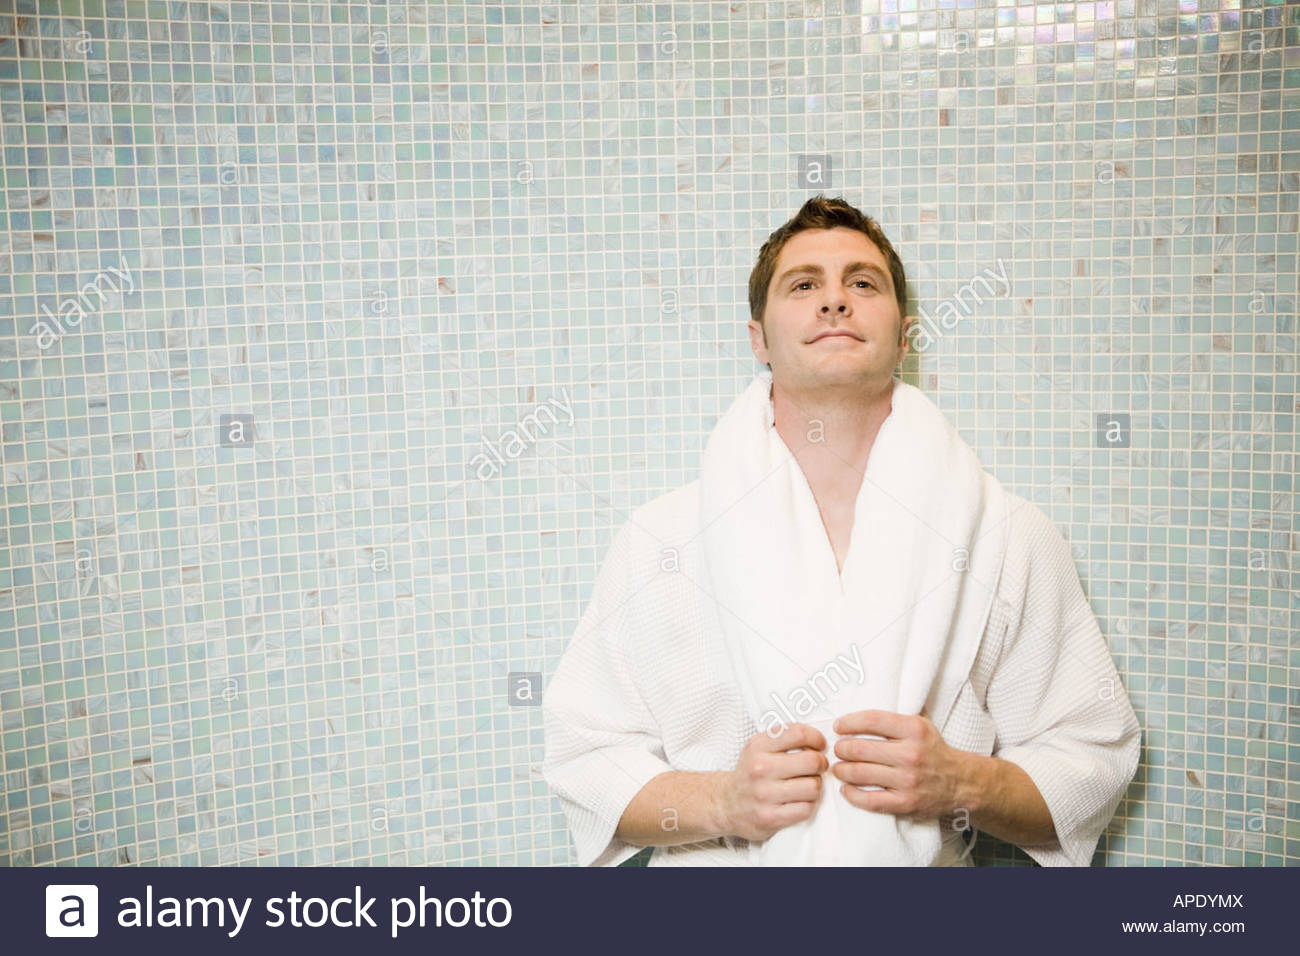 Man in bathrobe leaning on tile wall - Stock Image